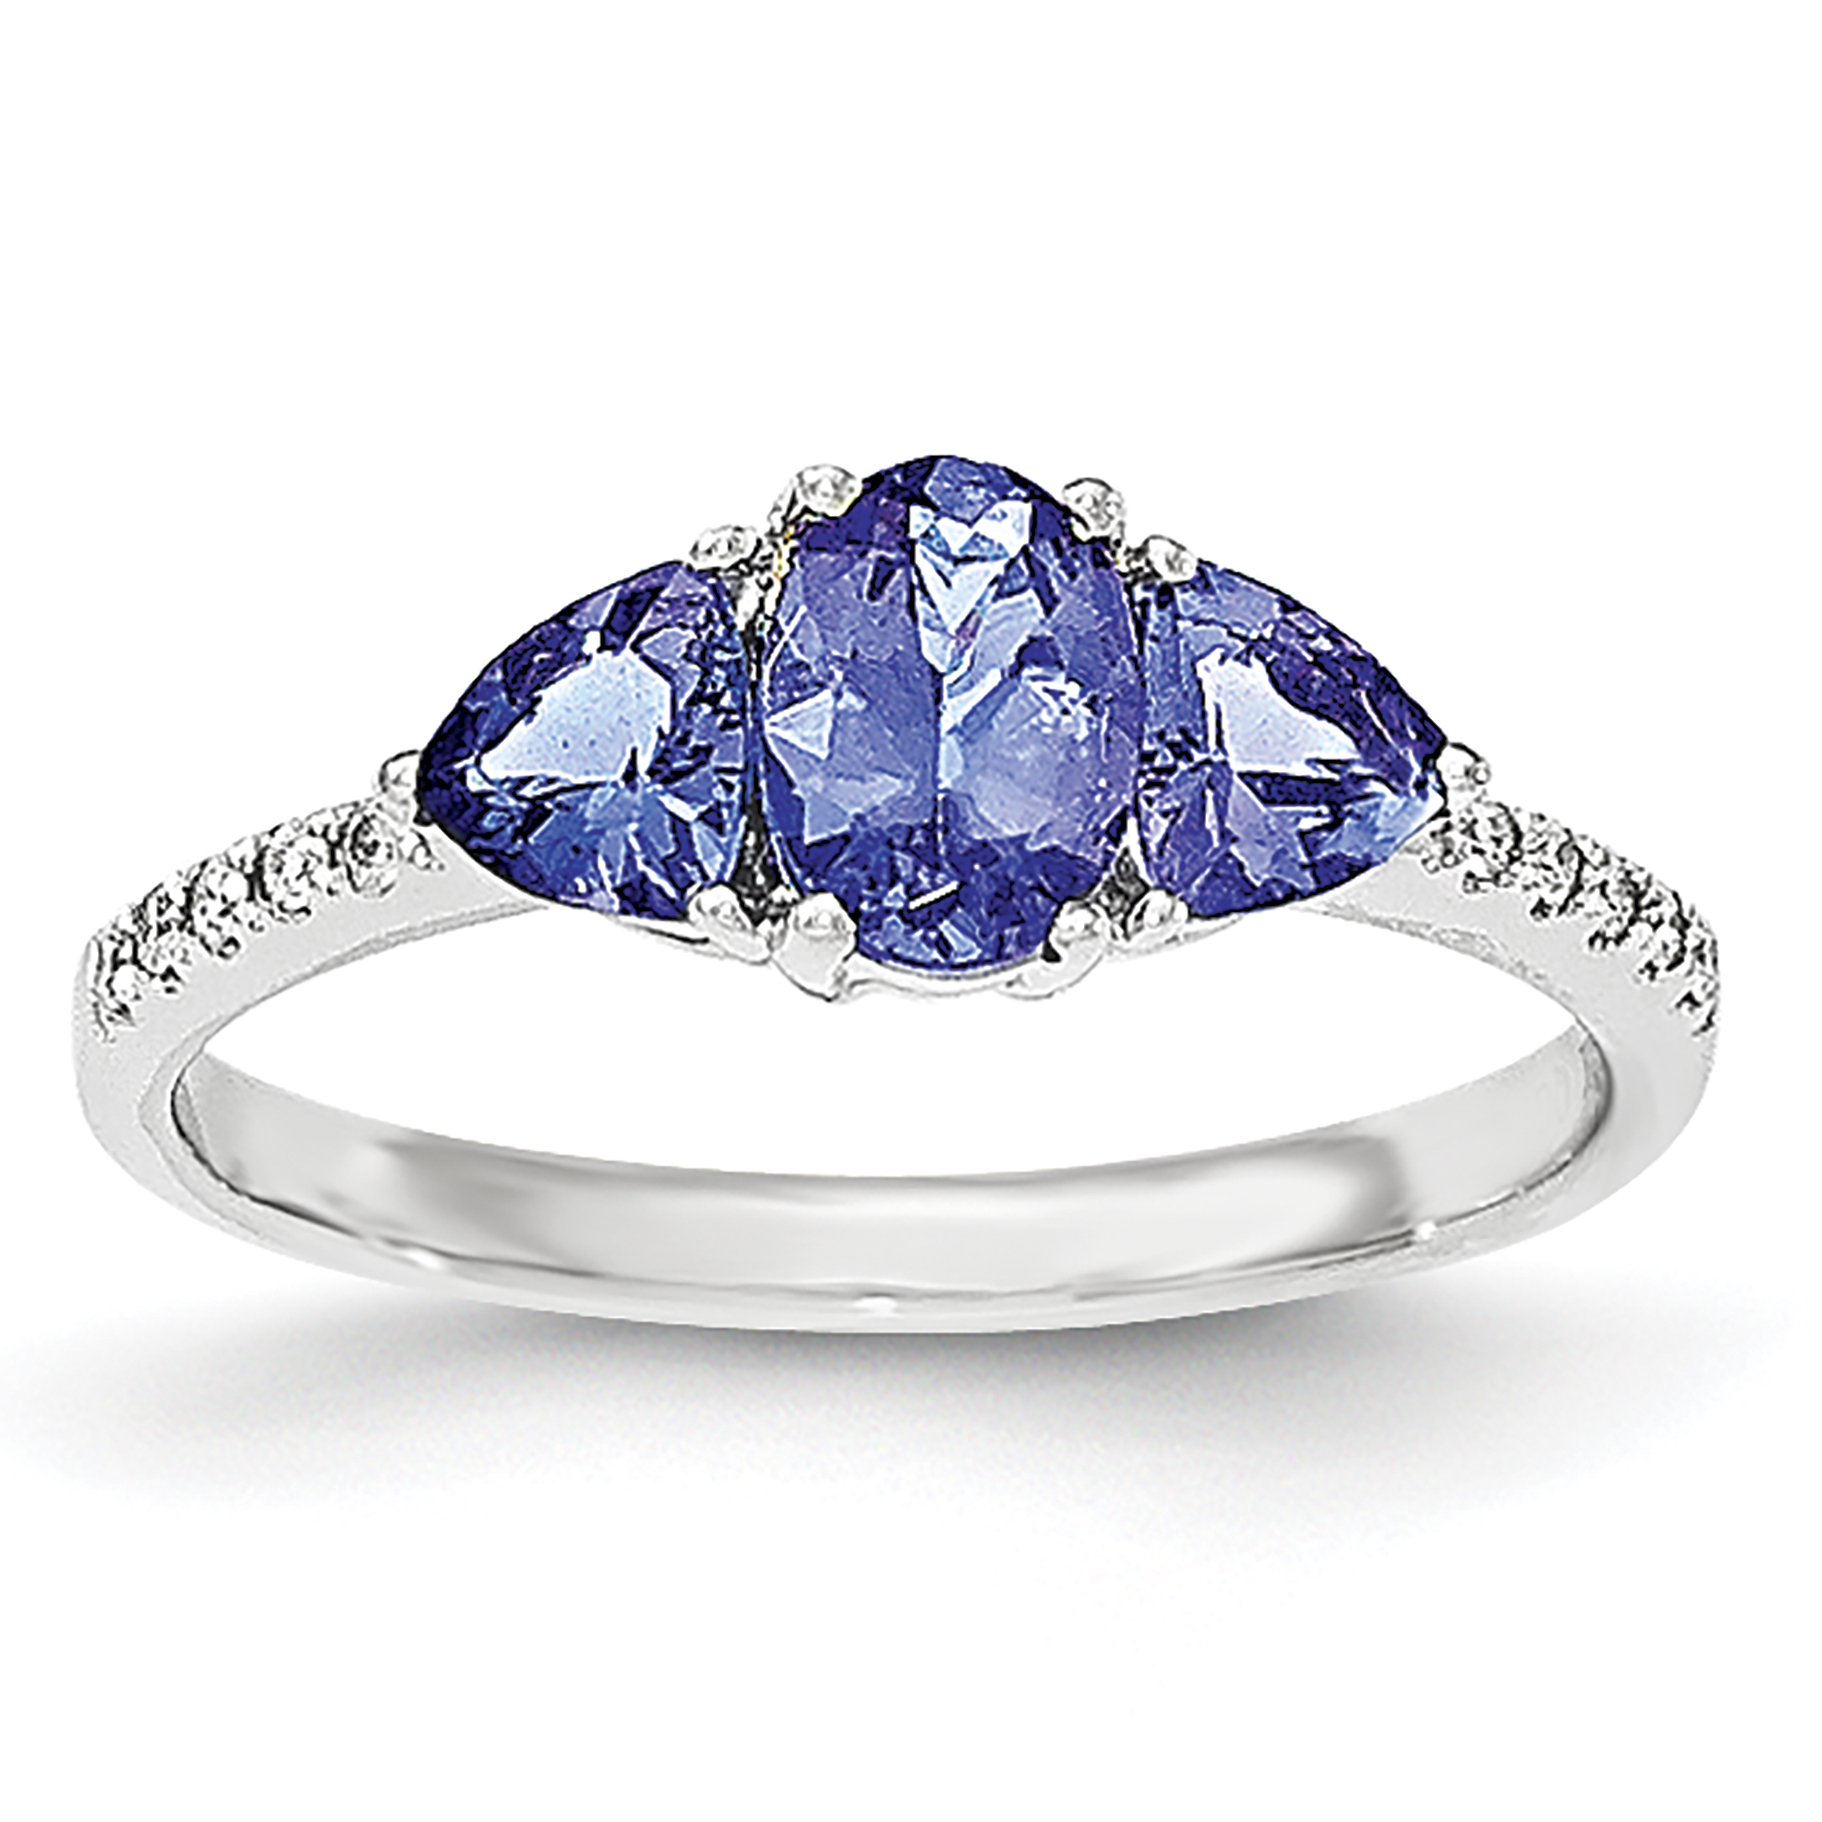 ring rings tamara shop g tanzanite contemporary trillion designs